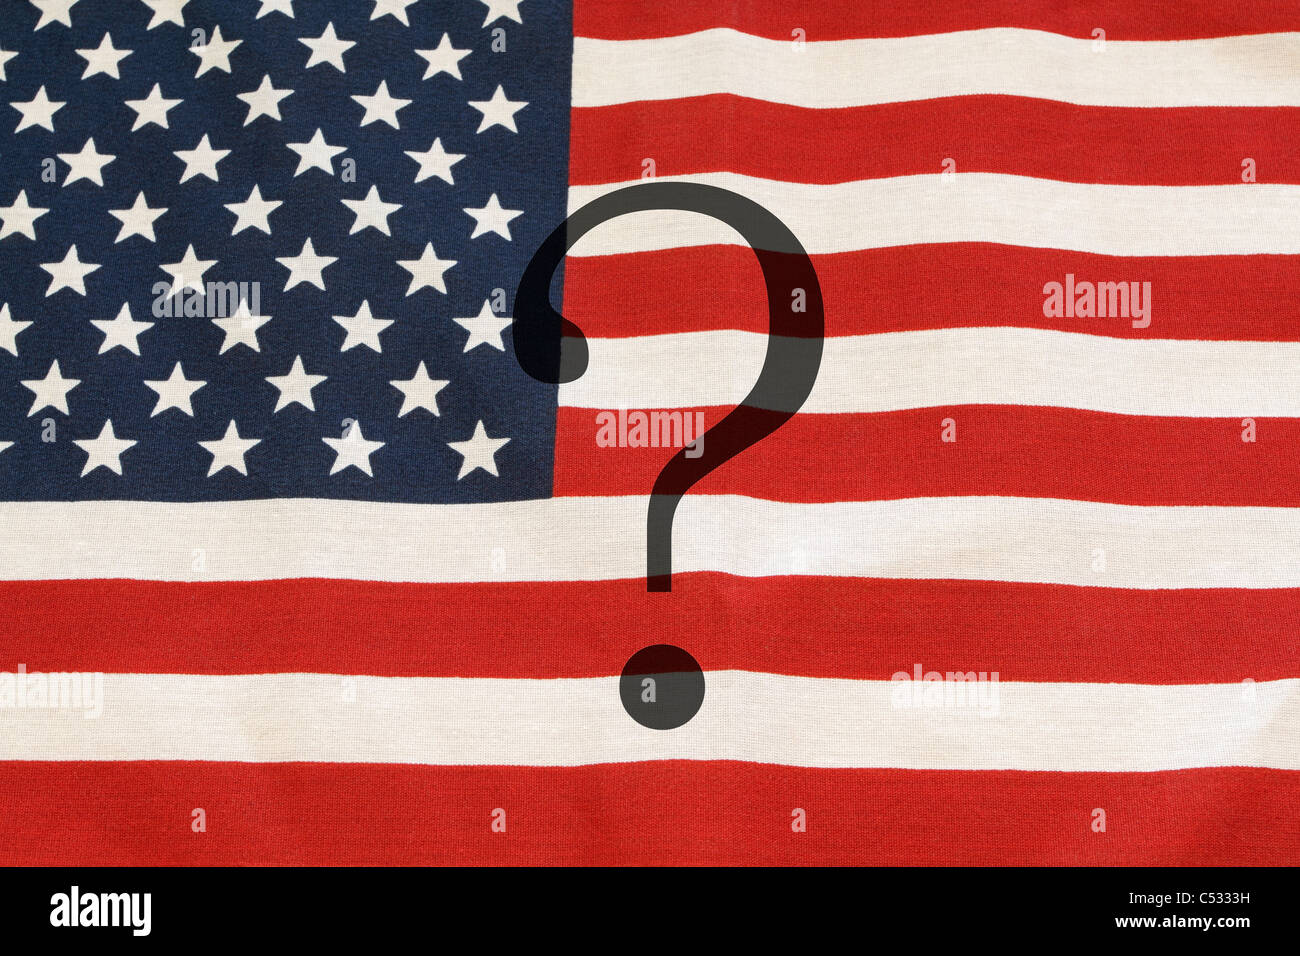 Questioning America's policies and direction. - Stock Image